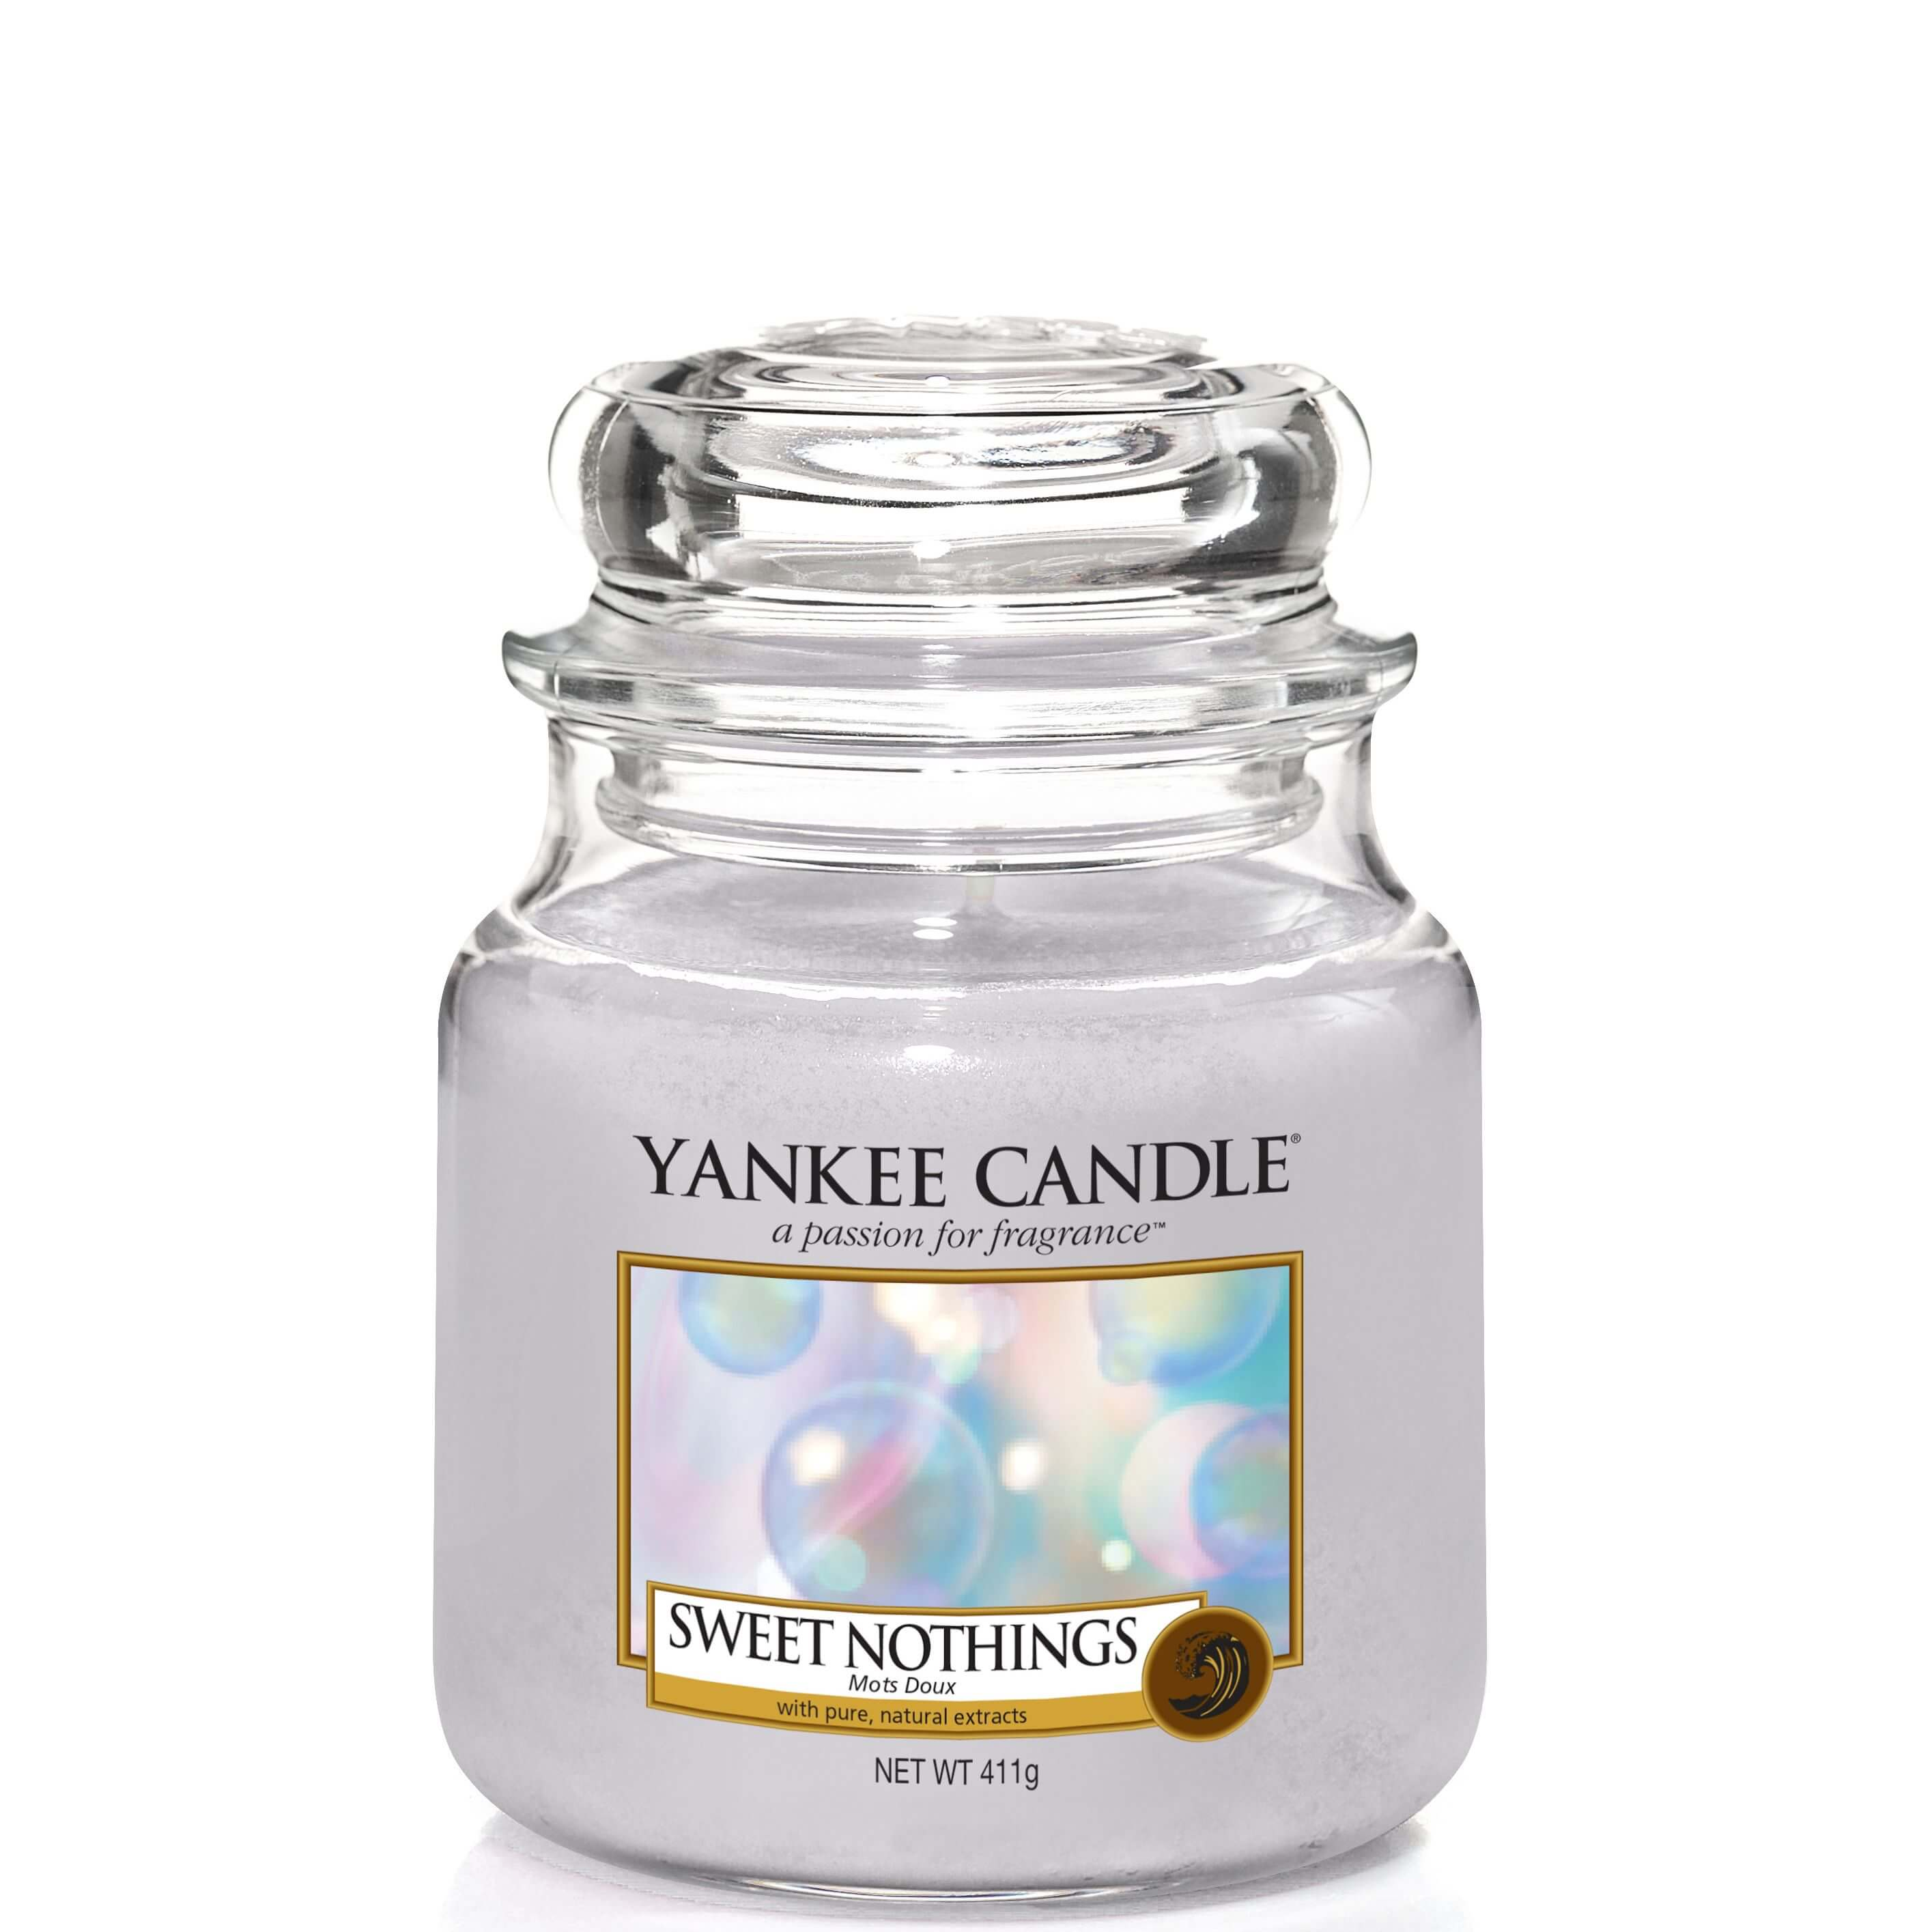 sweet nothings 411g von yankee candle online bestellen candle dream. Black Bedroom Furniture Sets. Home Design Ideas